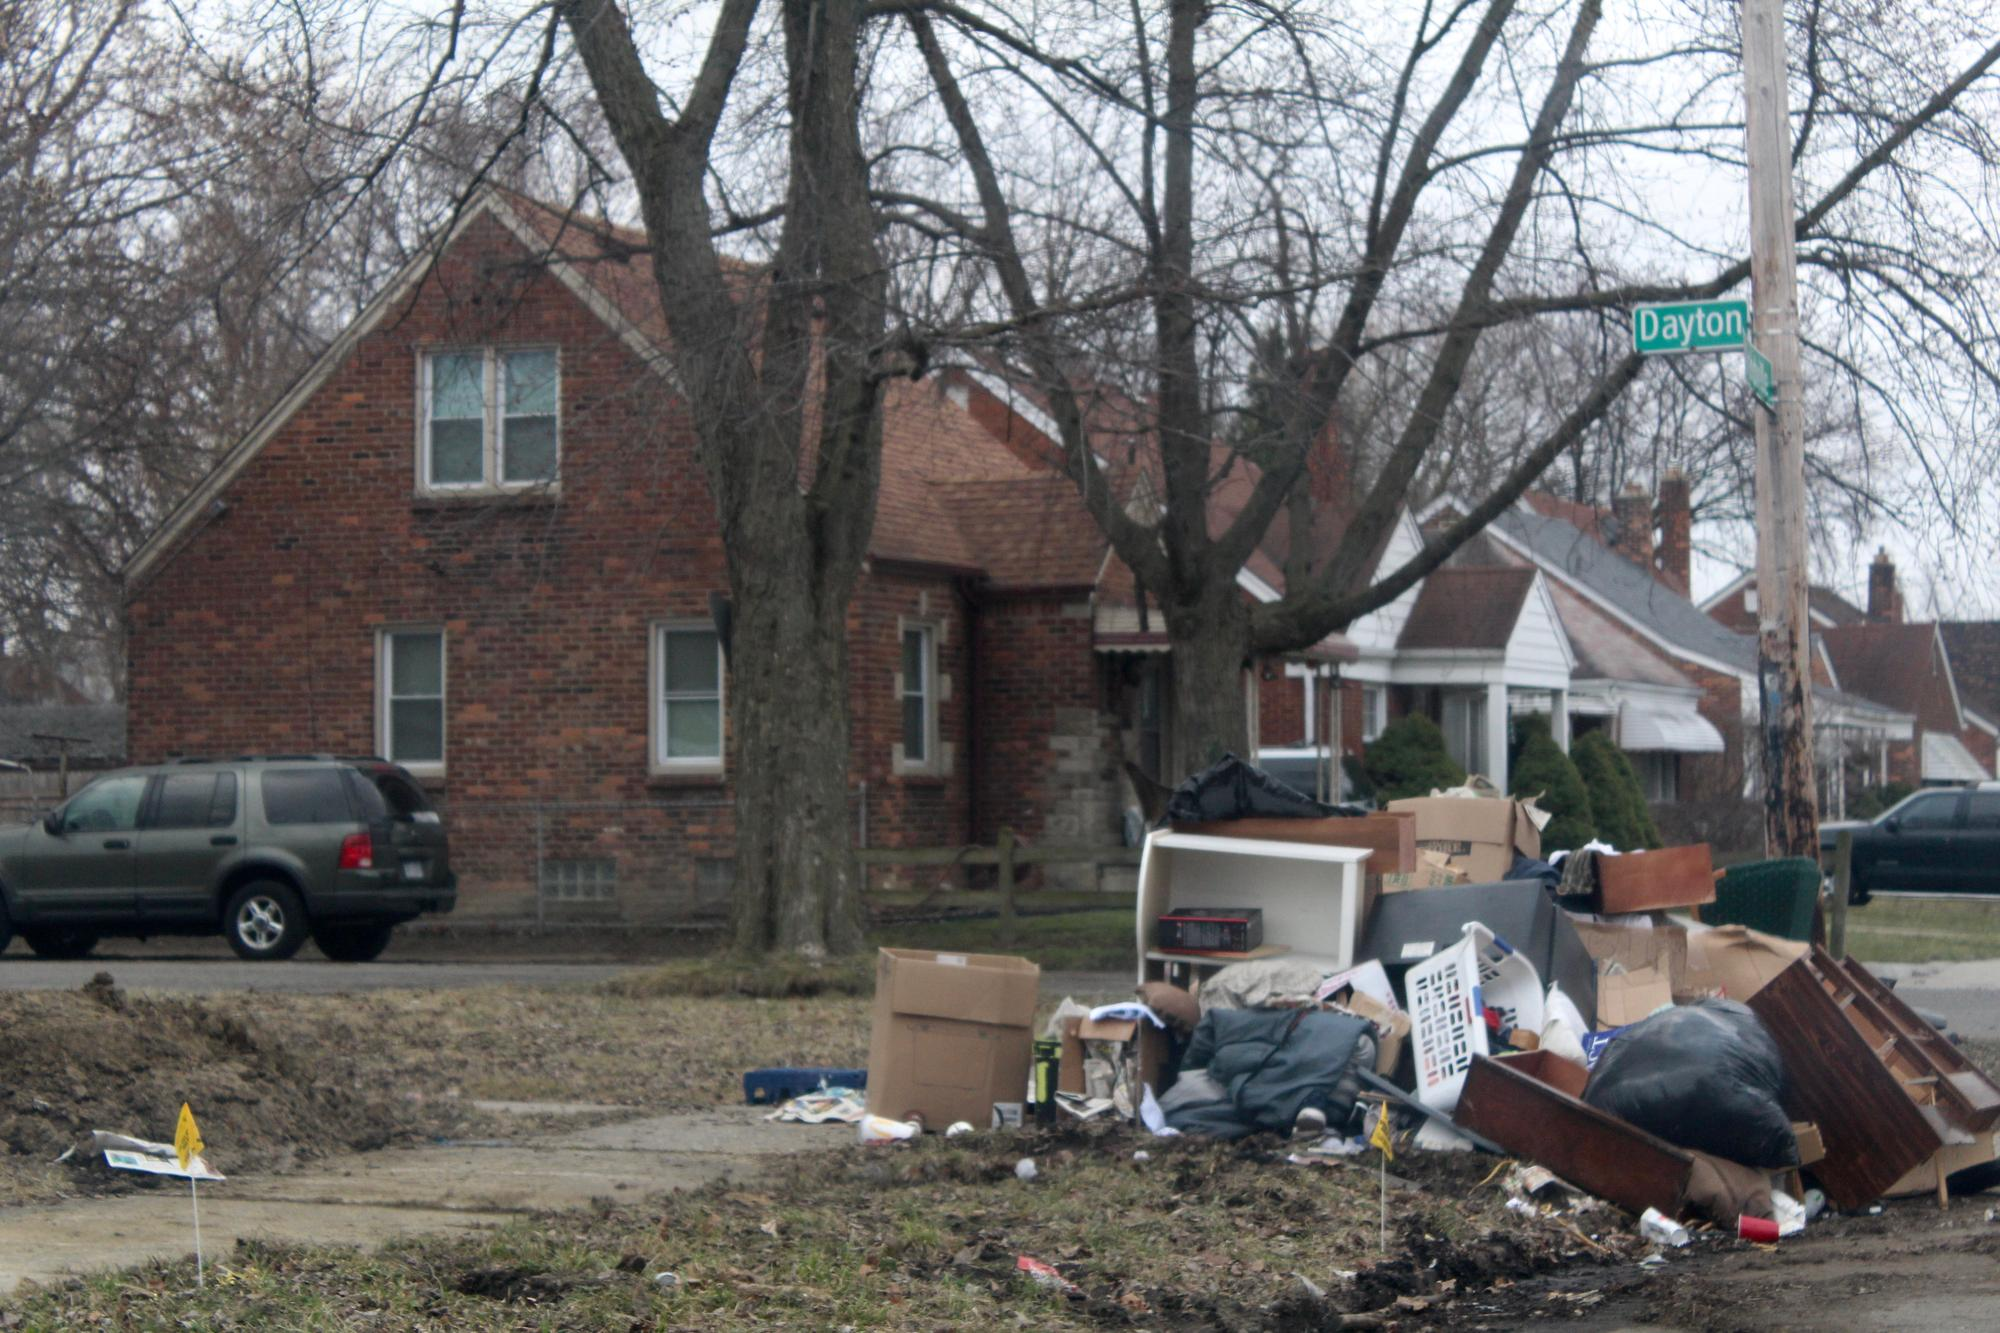 Barb says bulk trash like this is not picked up when it is dumped in front of an abandoned lot. She reports it to the city using the Improve Detroit smart phone app and says it should be picked up within the week.WDET/Laura Herberg